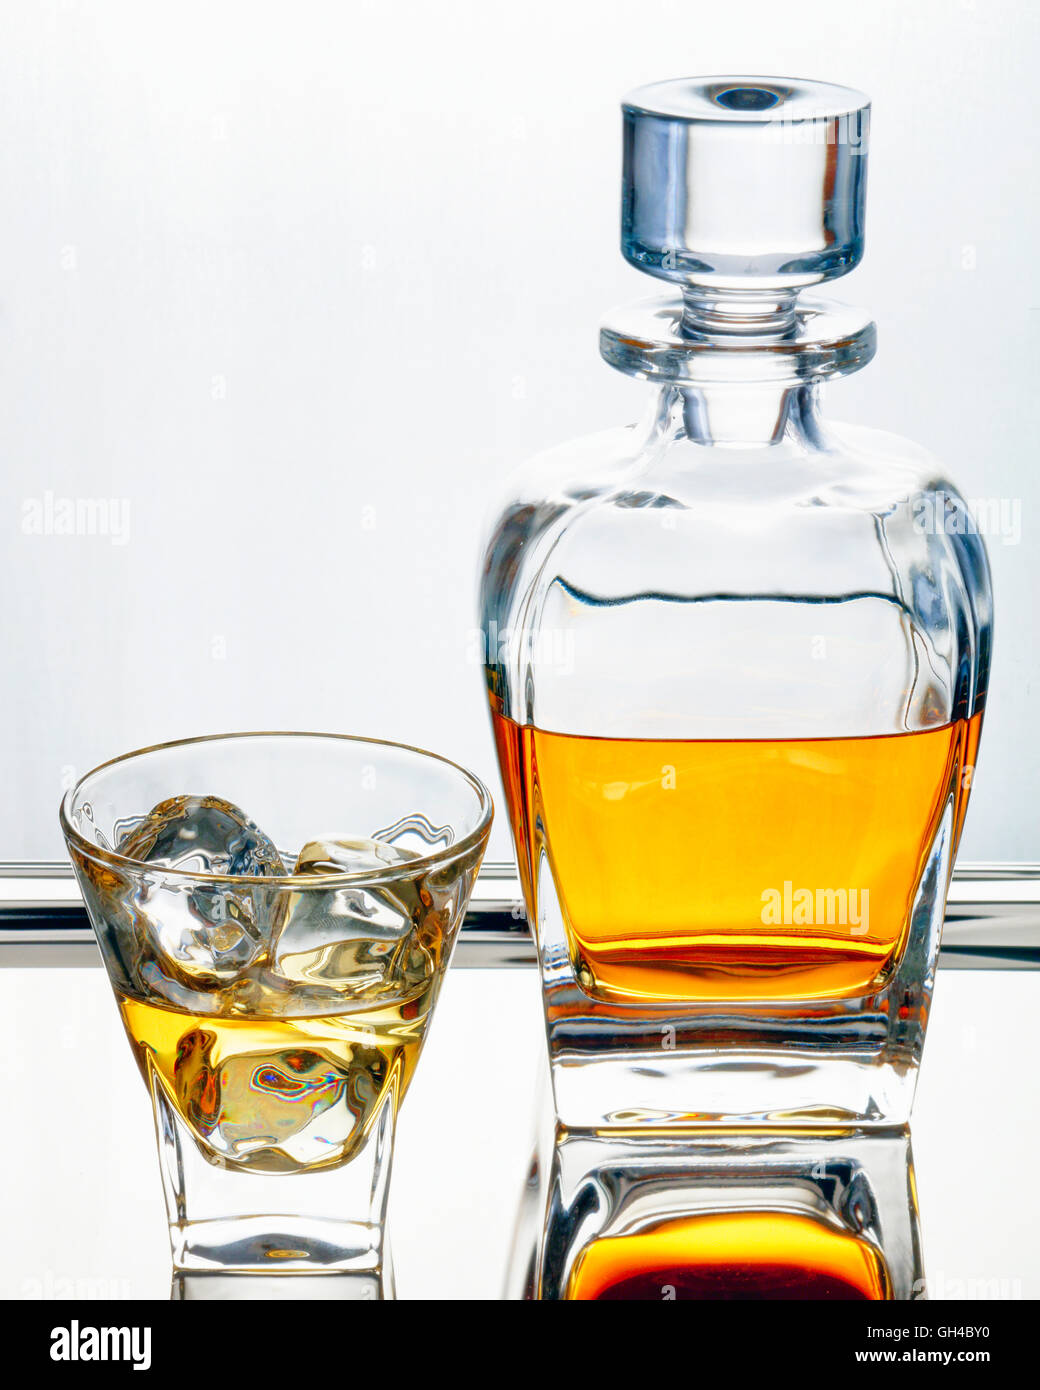 Smooth Scotch Whiskey in Traditional Decanter and Glass with Ice Cubes - Stock Image